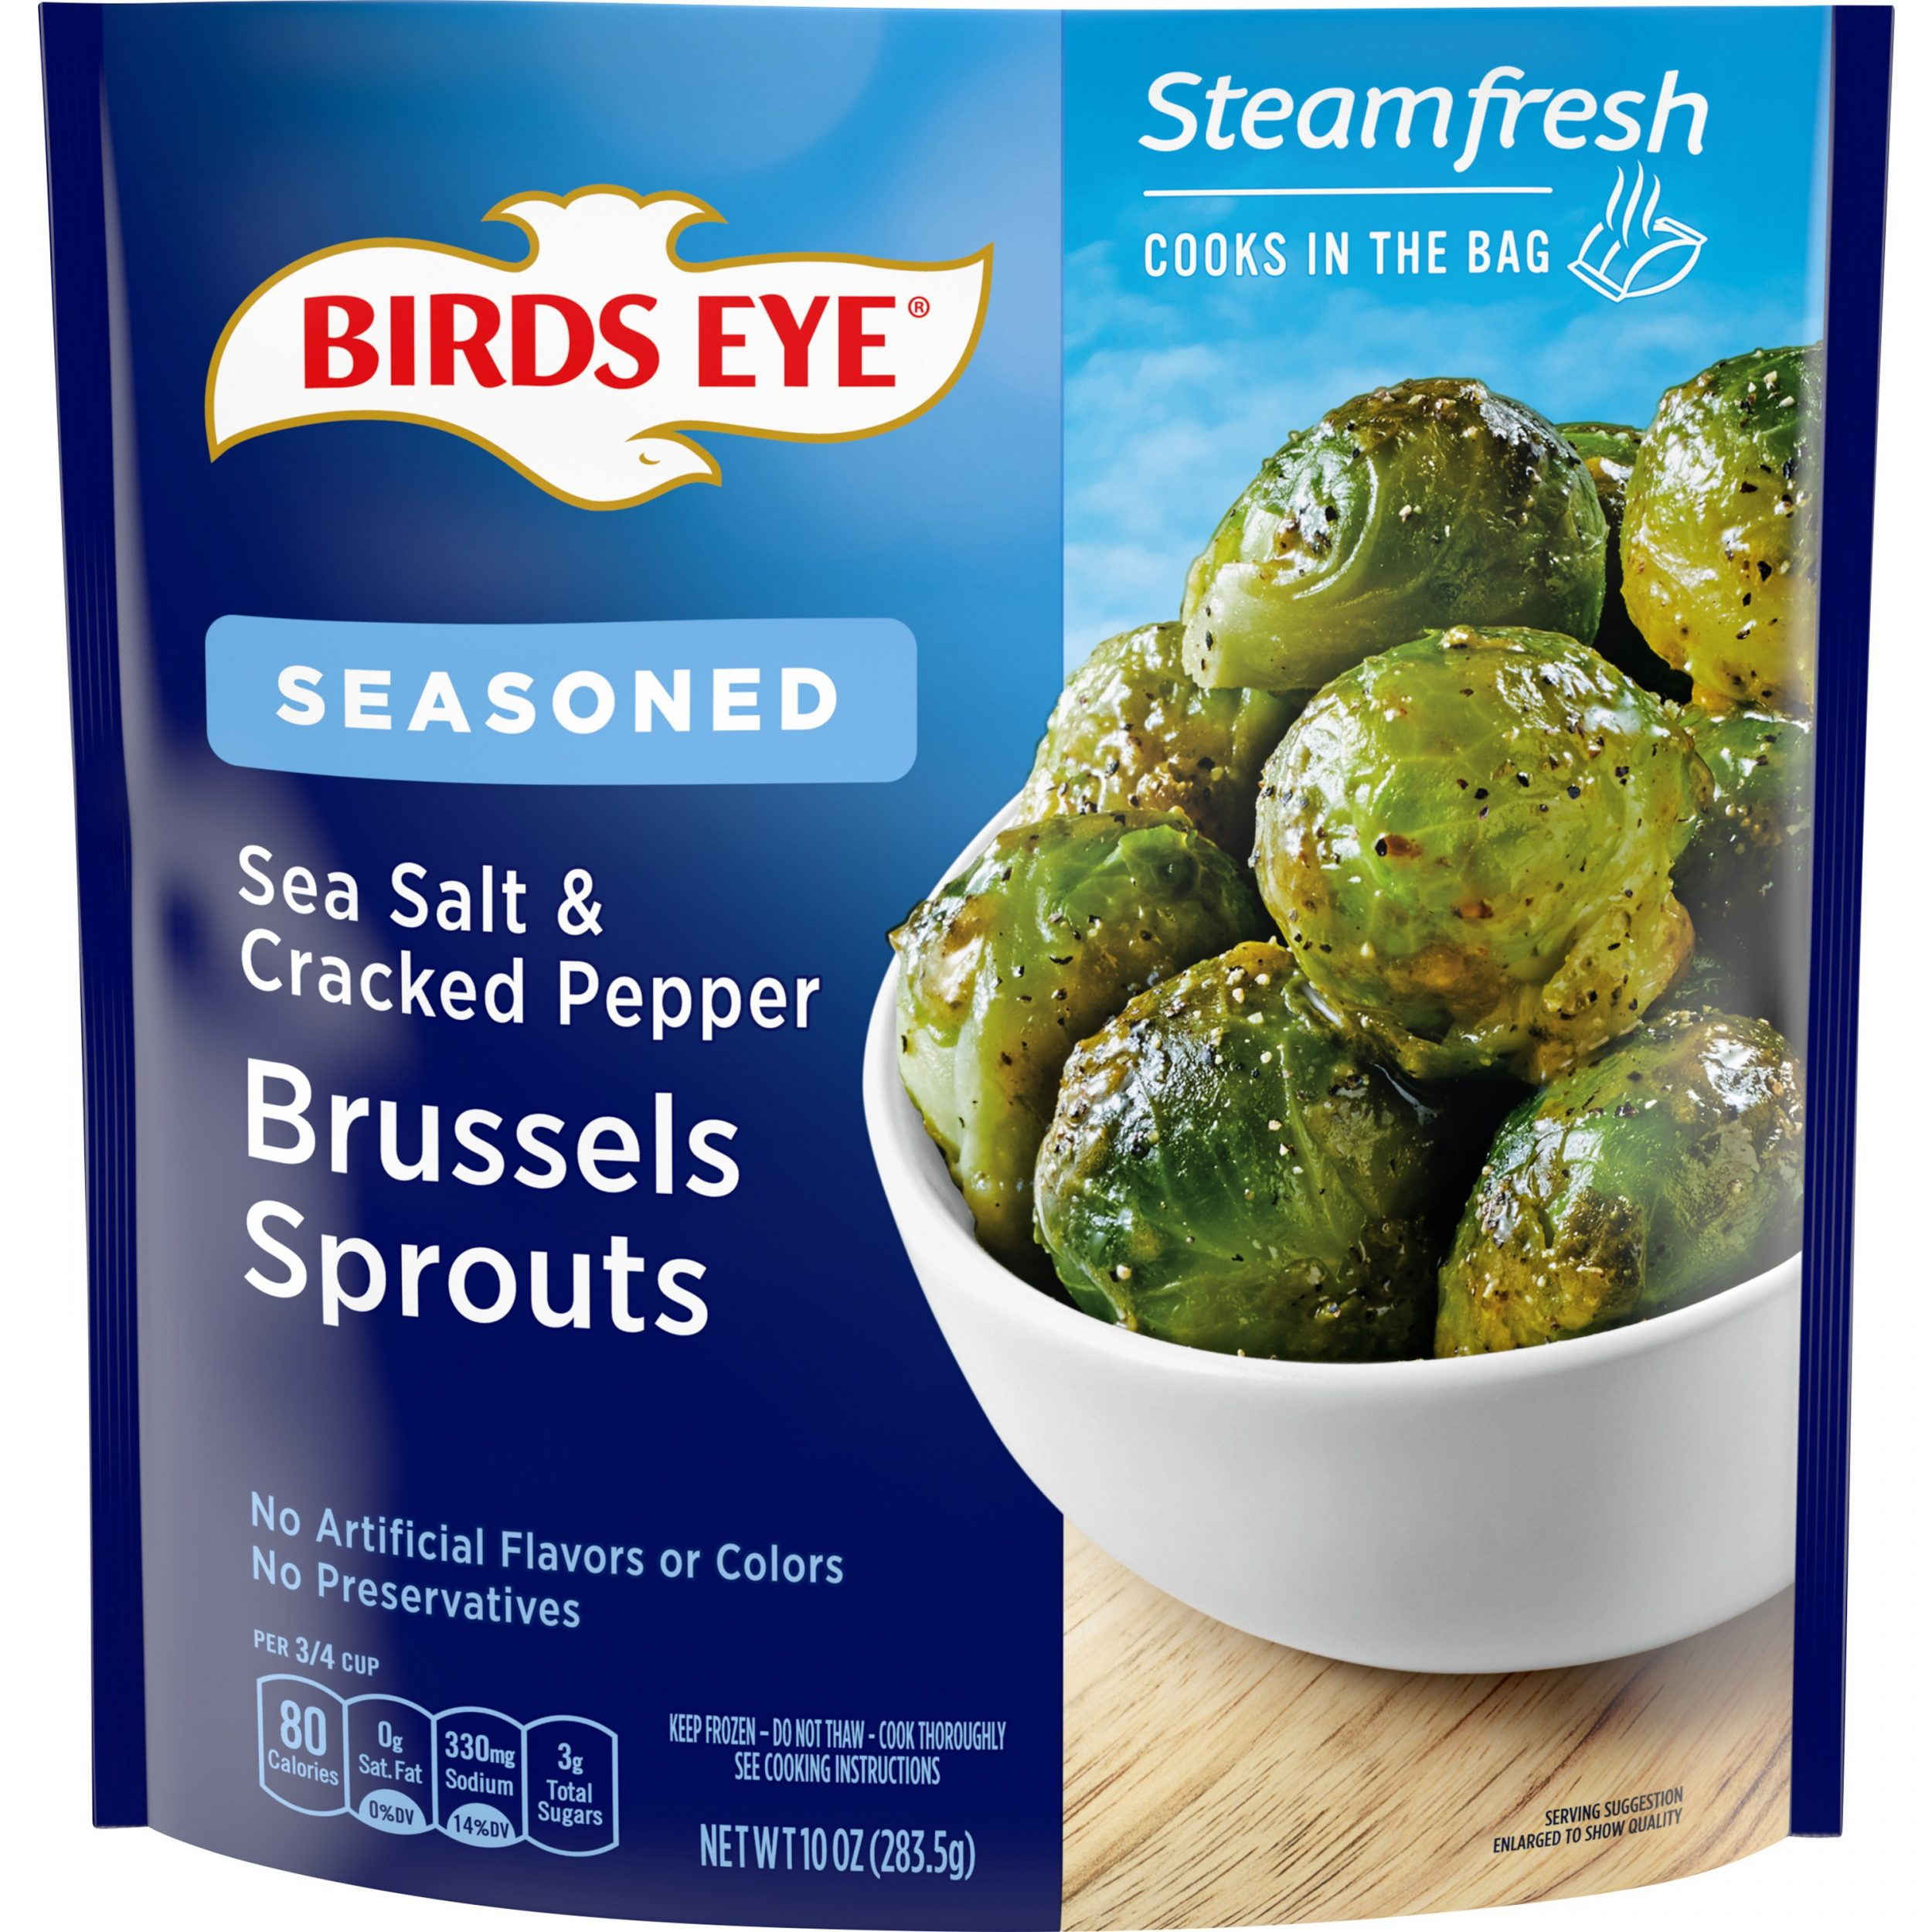 Birds Eye Steamfresh Flavor Full Sea Salt & Cracked Pepper Brussels Sprouts